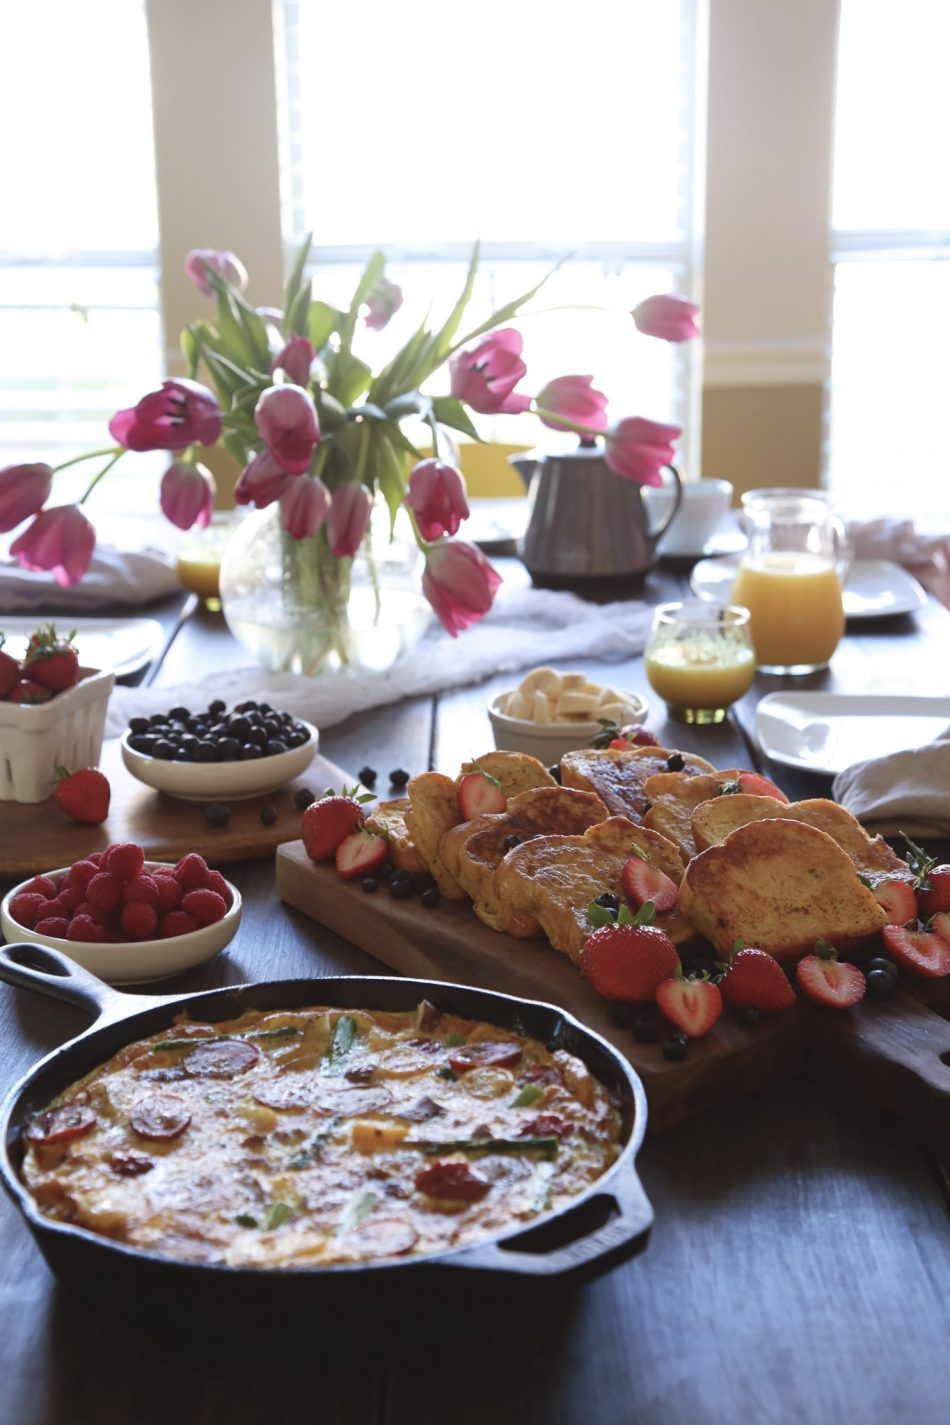 Mother's Day Brunch Recipes   Many gluten, grain, and dairy free, as well as vegan/vegetarian options.